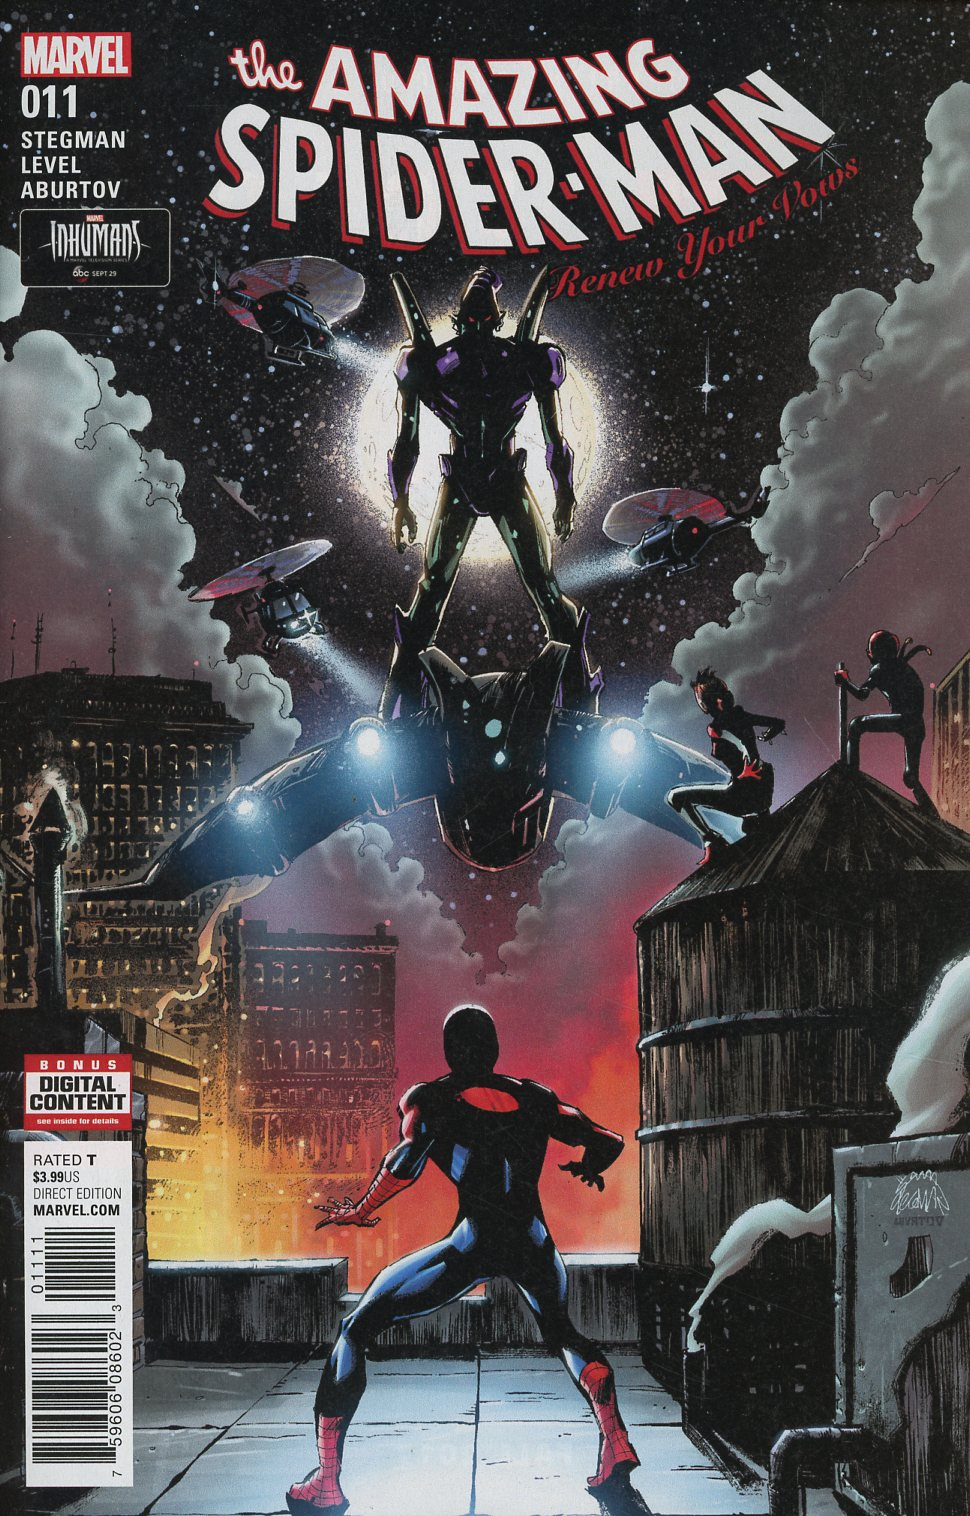 Amazing Spider-Man Renew Your Vows Vol 2 #11